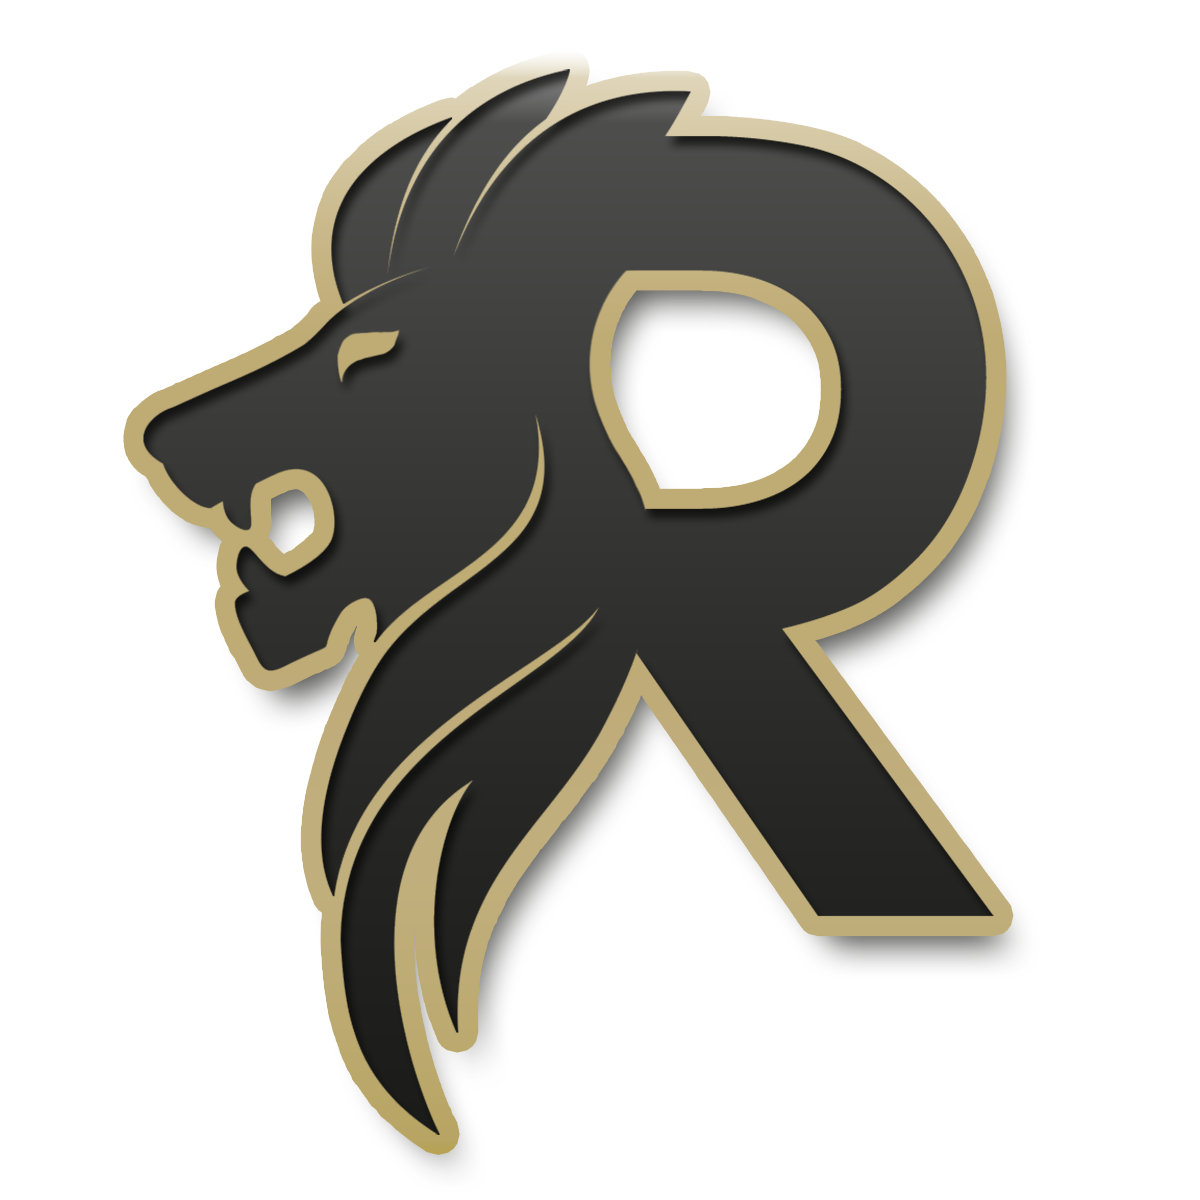 Roar R Logo Wallpaper